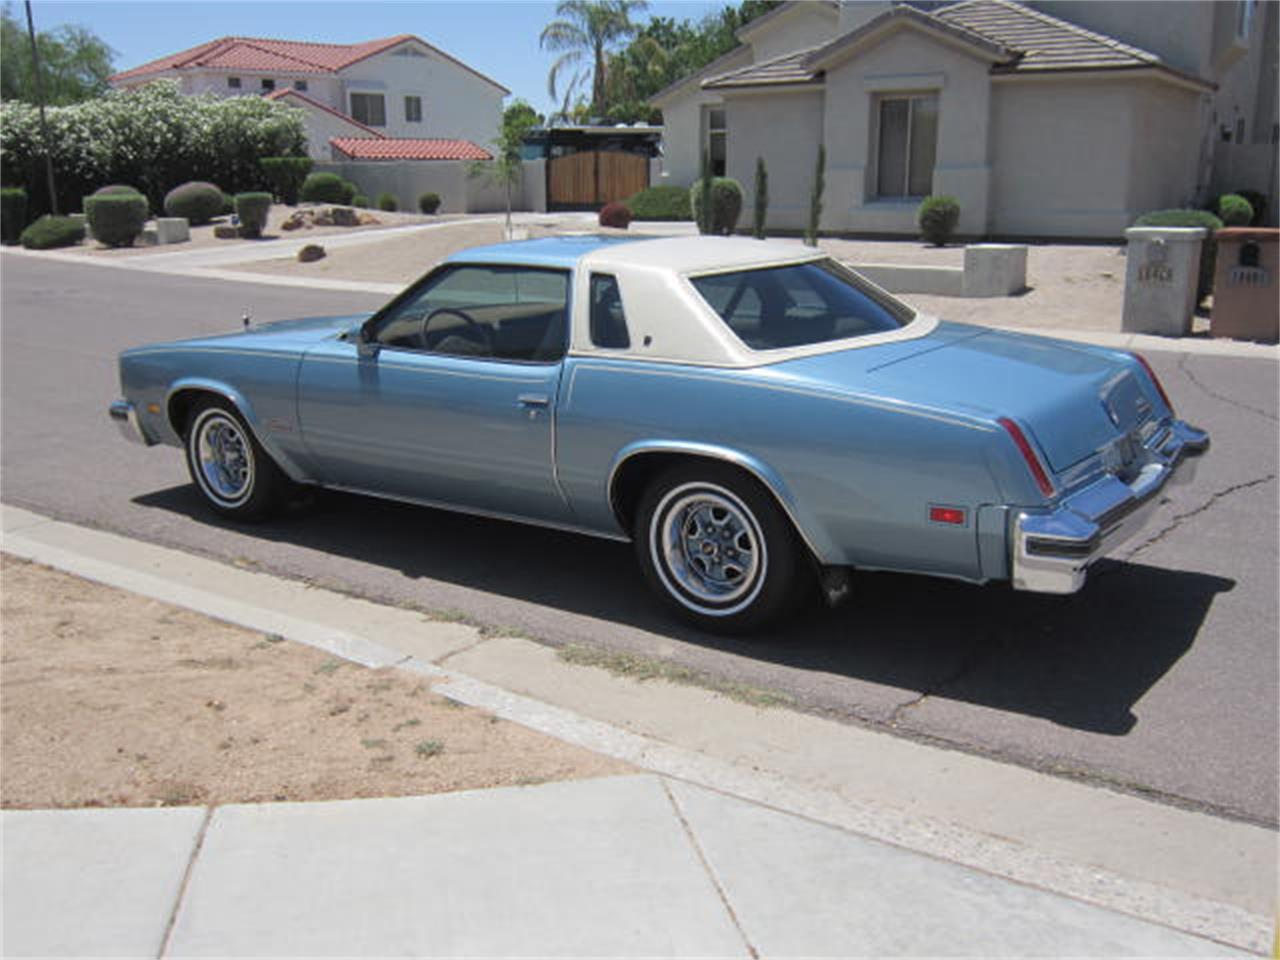 Large Picture of 1977 Oldsmobile Cutlass - $15,000.00 - DISY